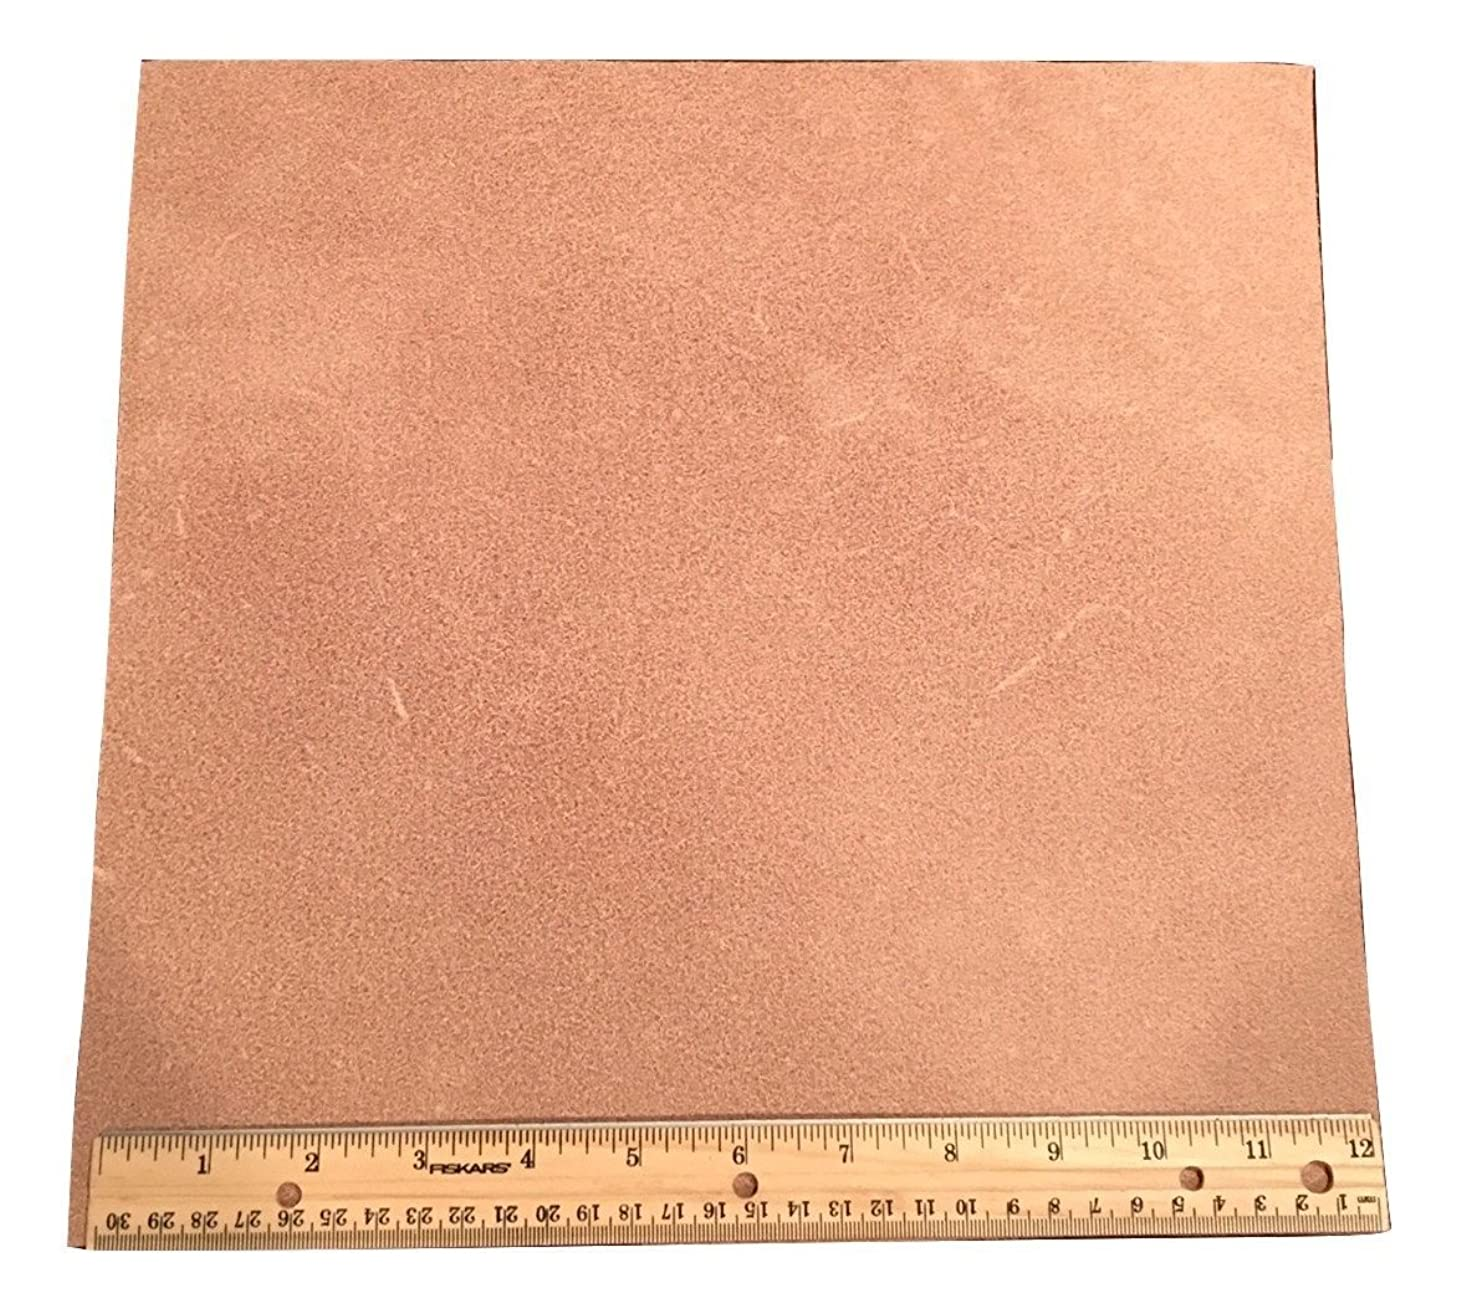 Dangerous Threads Leather Side Veg Tan Splits - Medium Weight- Various Sizes (10 SF (30